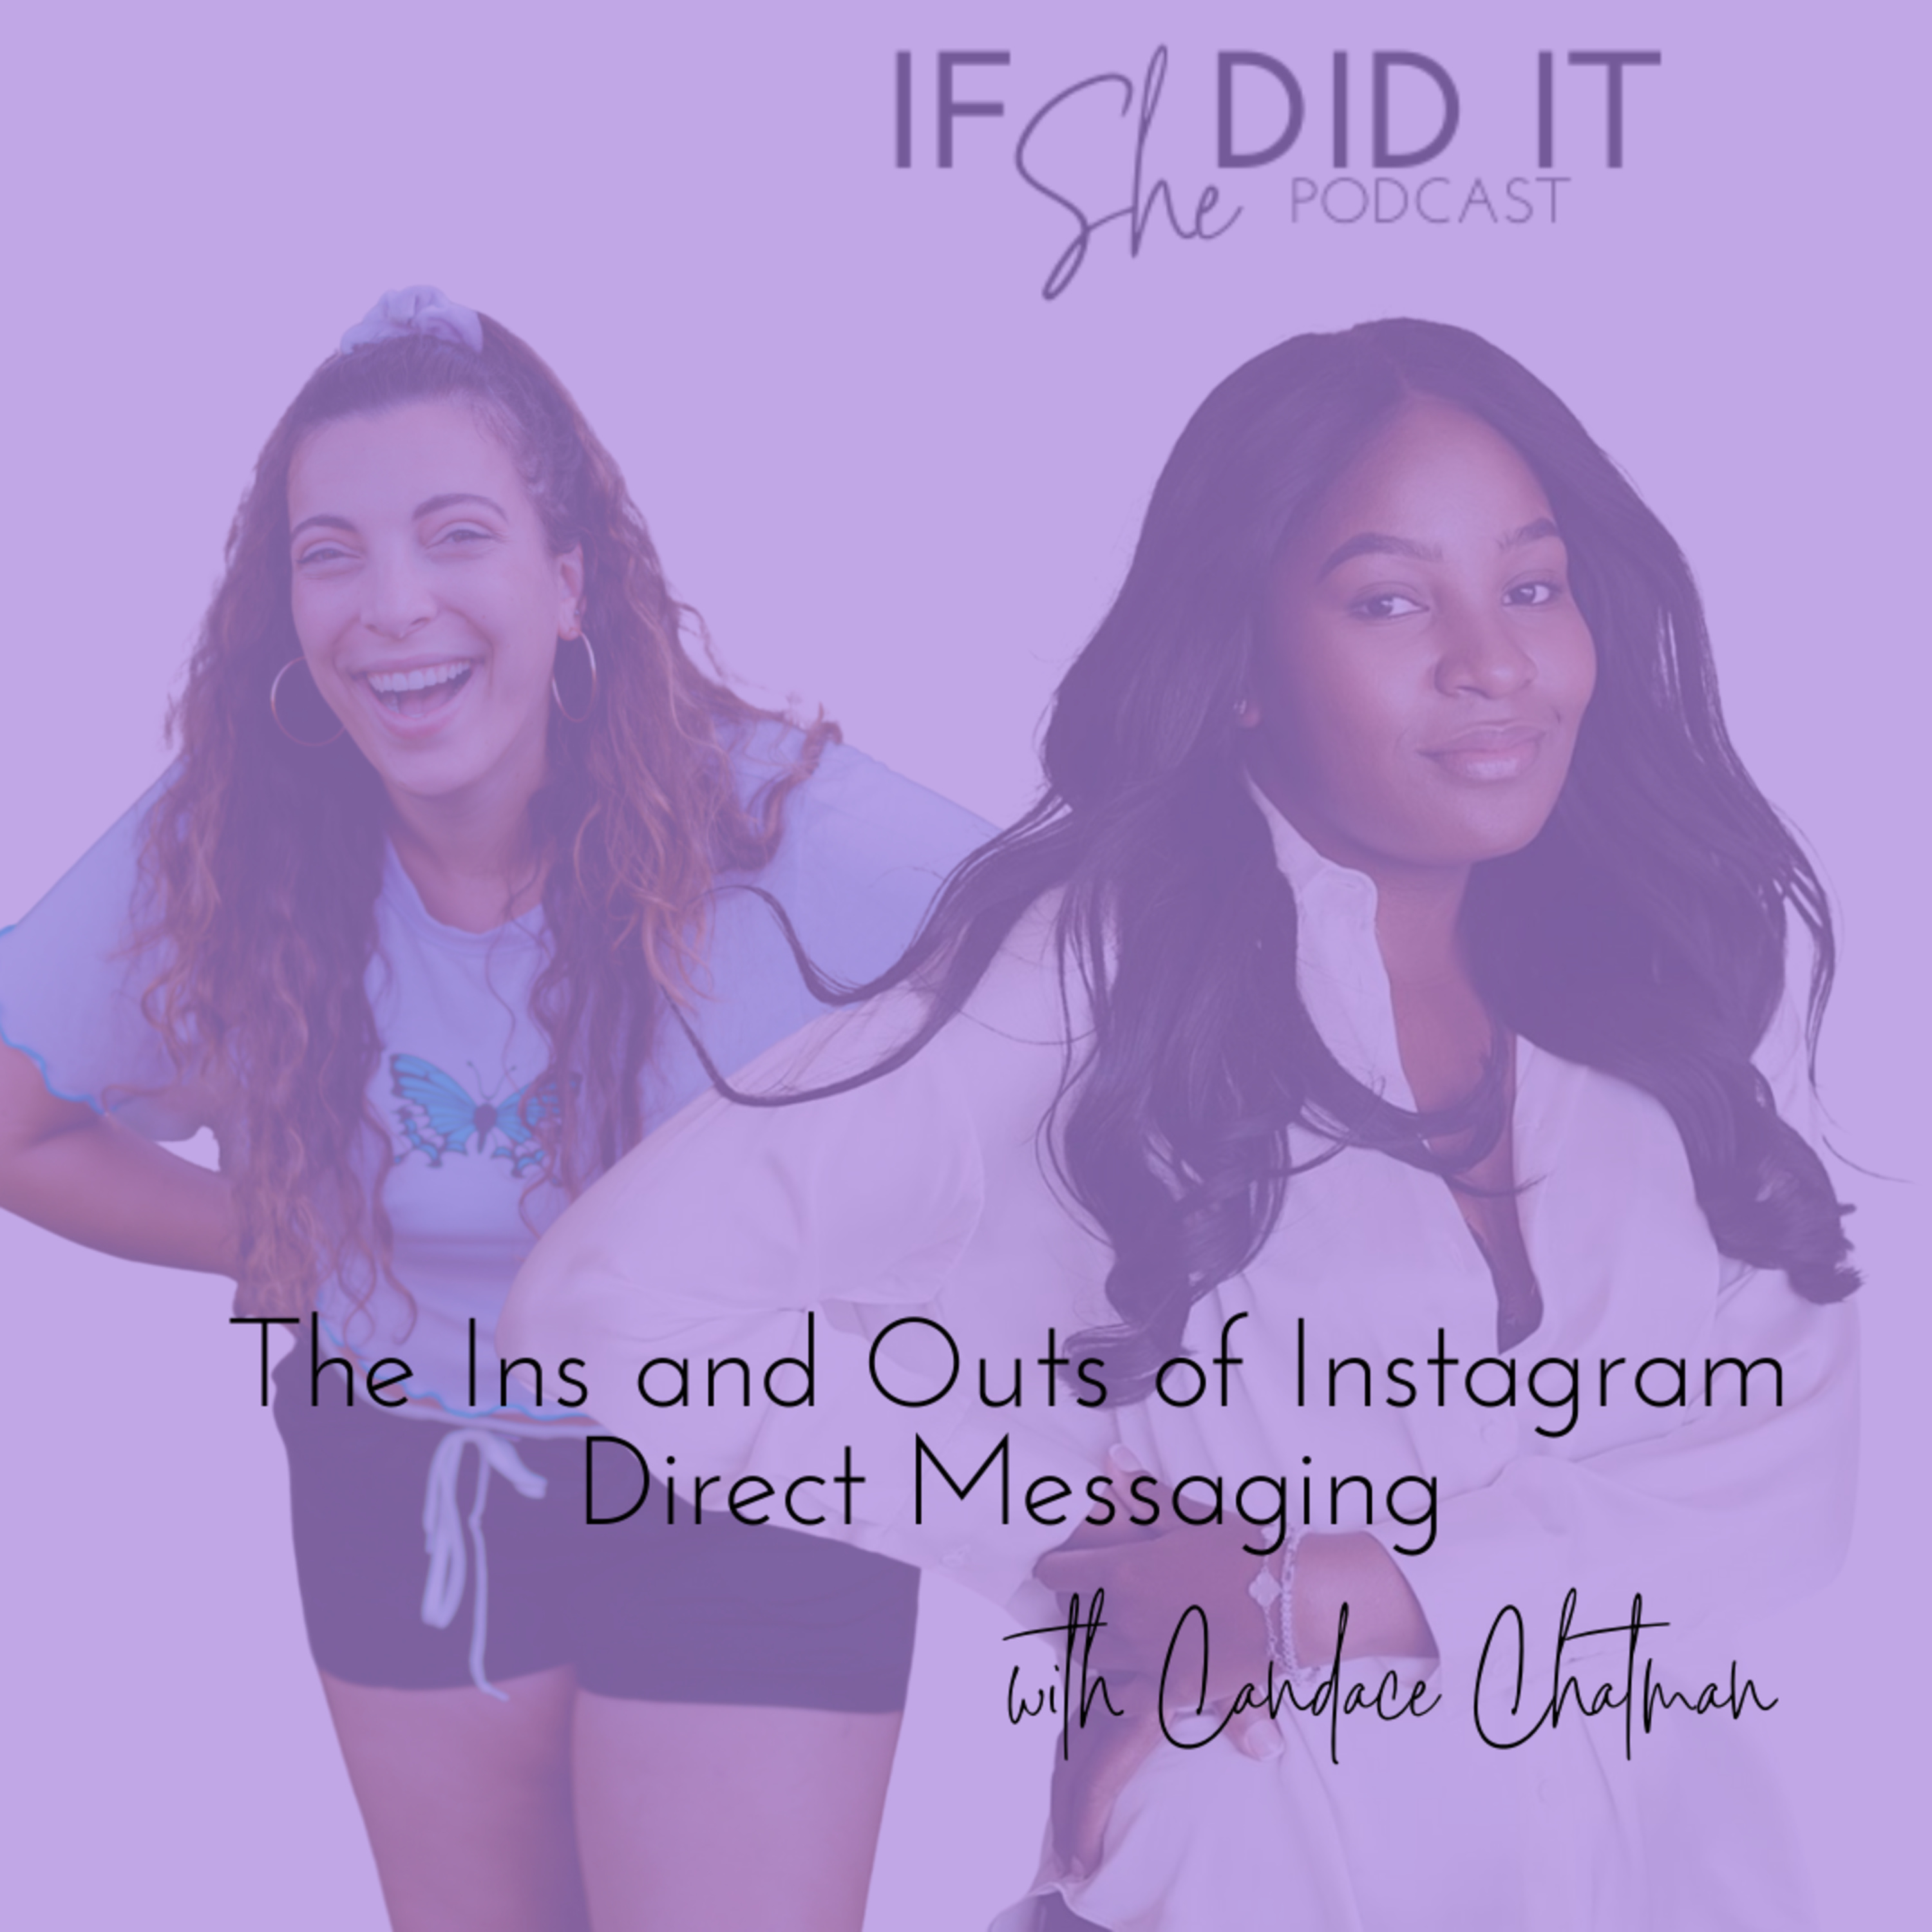 The Ins and Outs of Instagram Direct Messaging